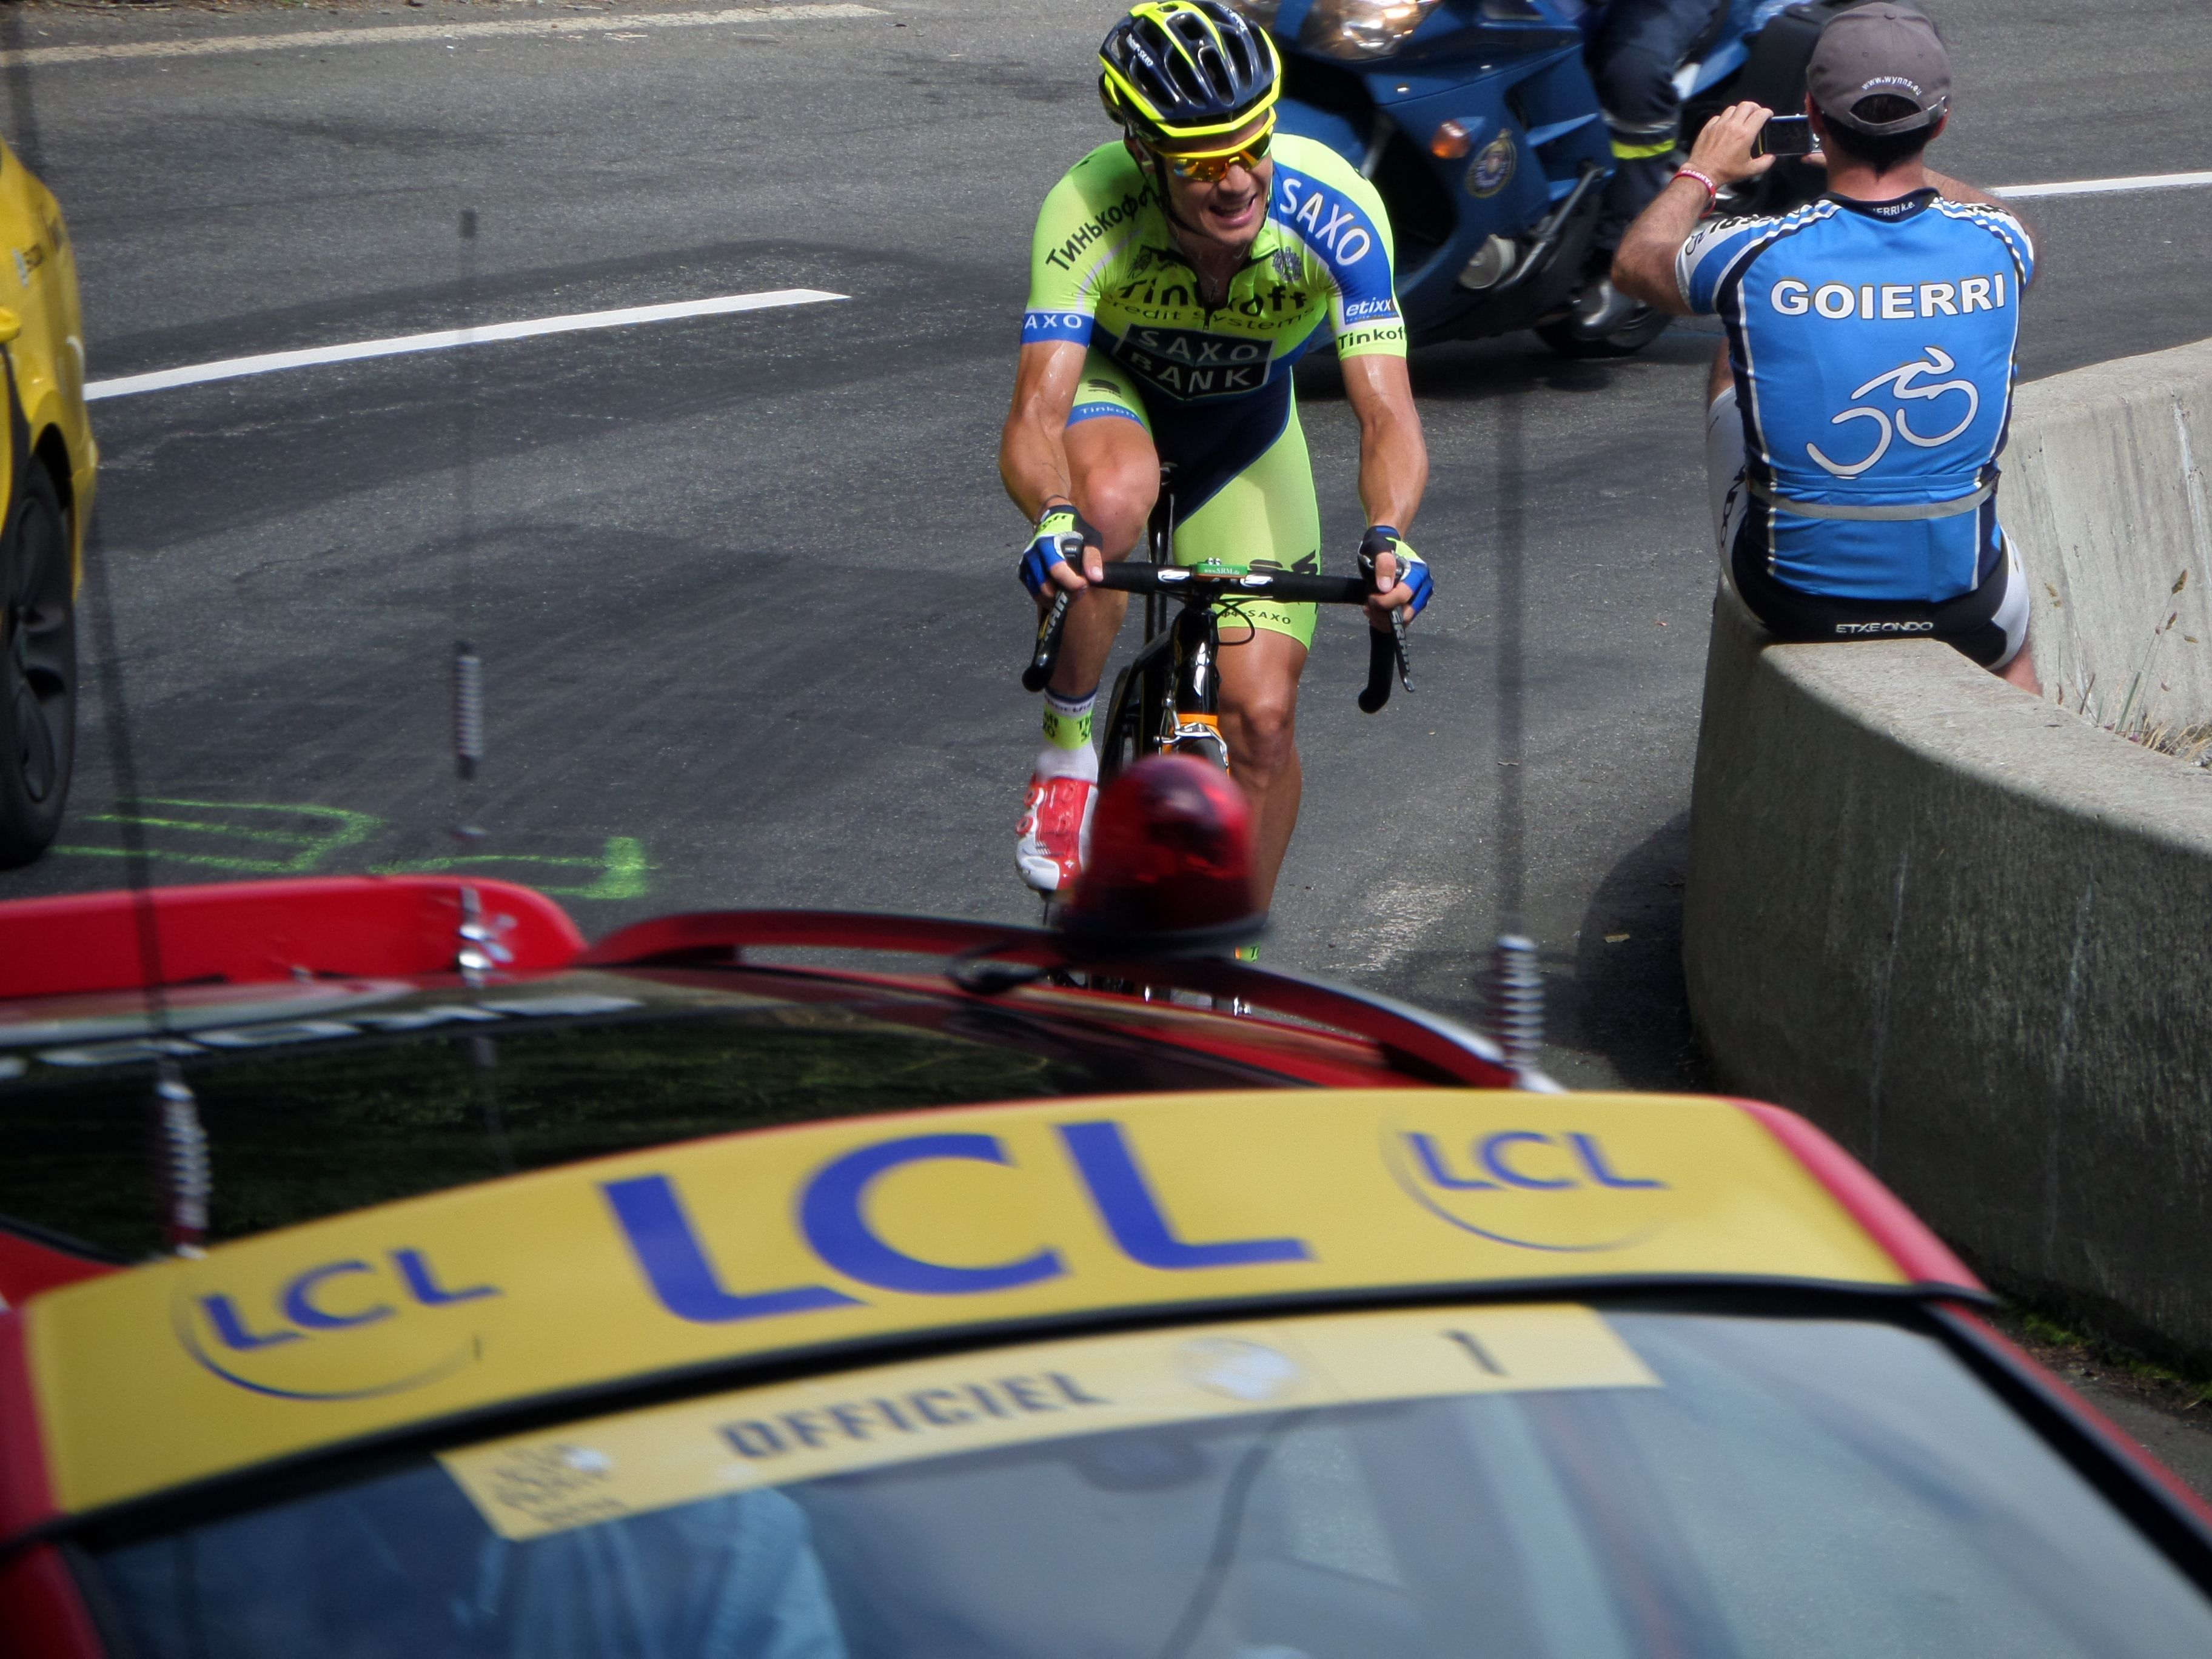 Nicolas Roche's effort on the last climb of the day Pla d'Adet. Stage 17, Tour de France.  http://www.cyclefiesta.com/